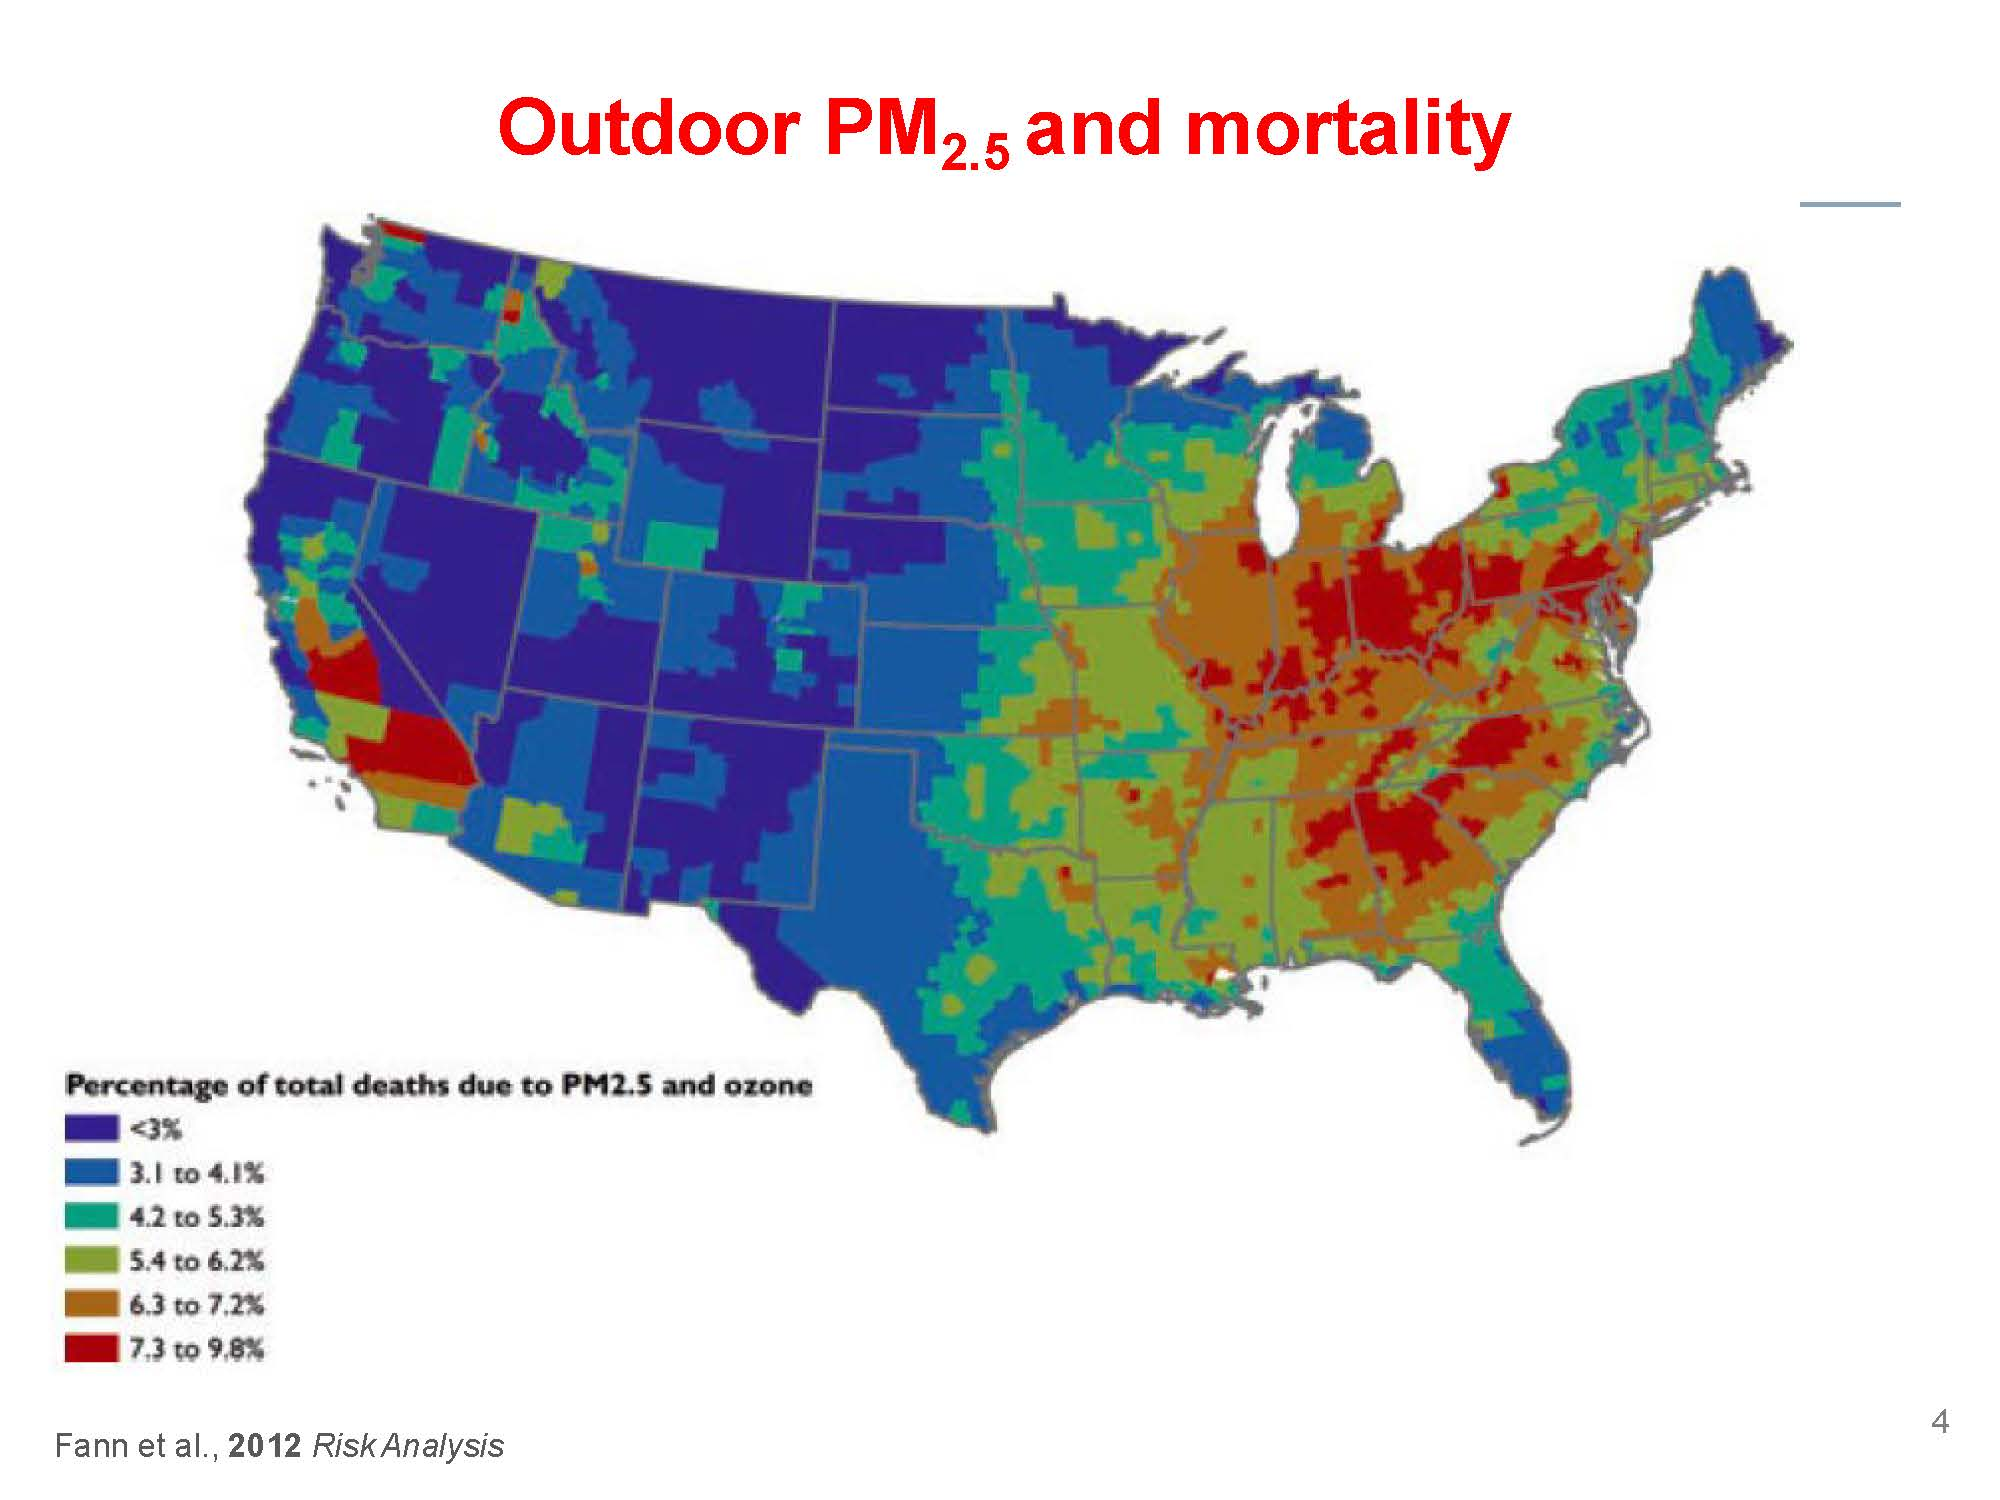 PM 2.5 - The killer that can't be seen.